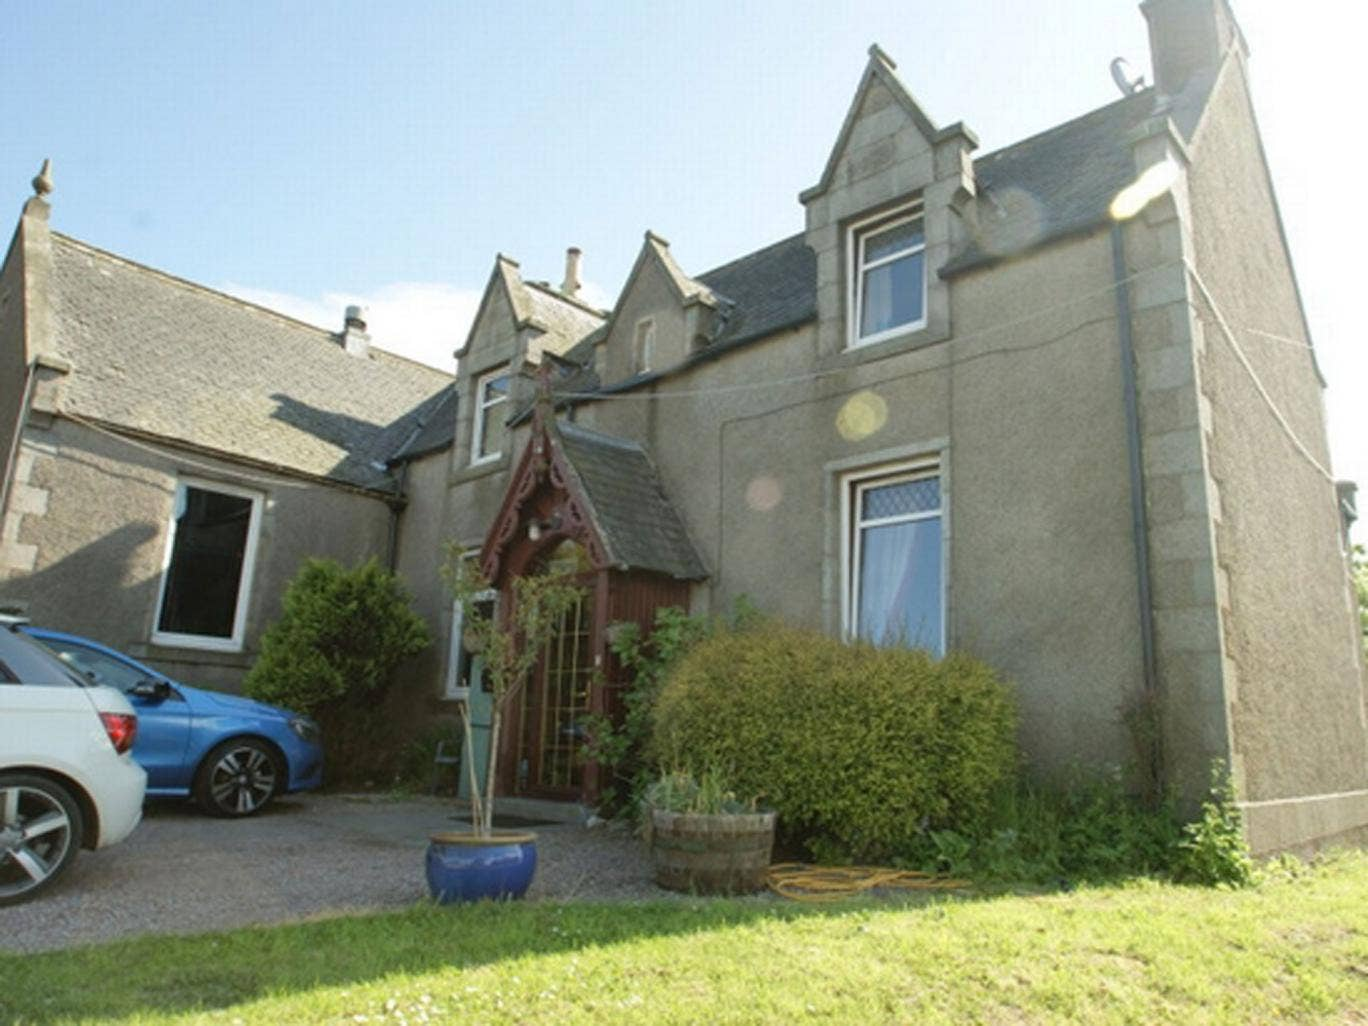 Three bedroom semi-detached house for sale in Wellington Road, Nigg, Aberdeen AB12. On with Express Estate Agency at a guide price of £225,000